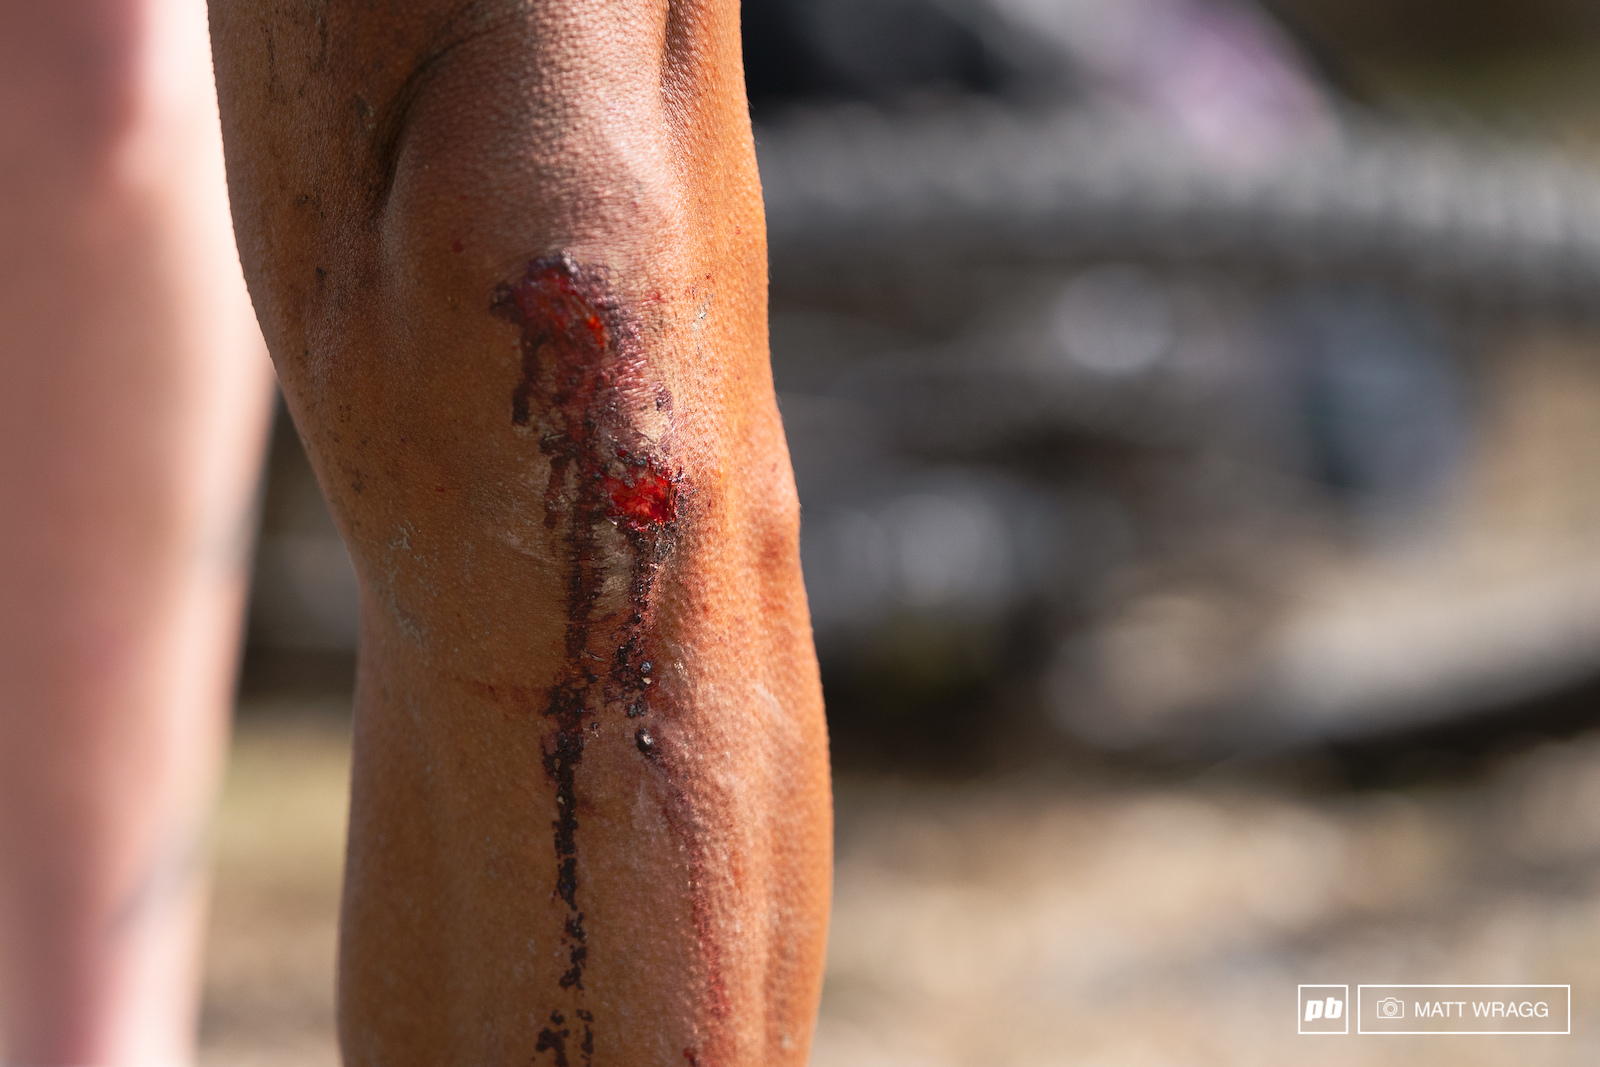 Kneepads were considered and inconvenience by most racers...